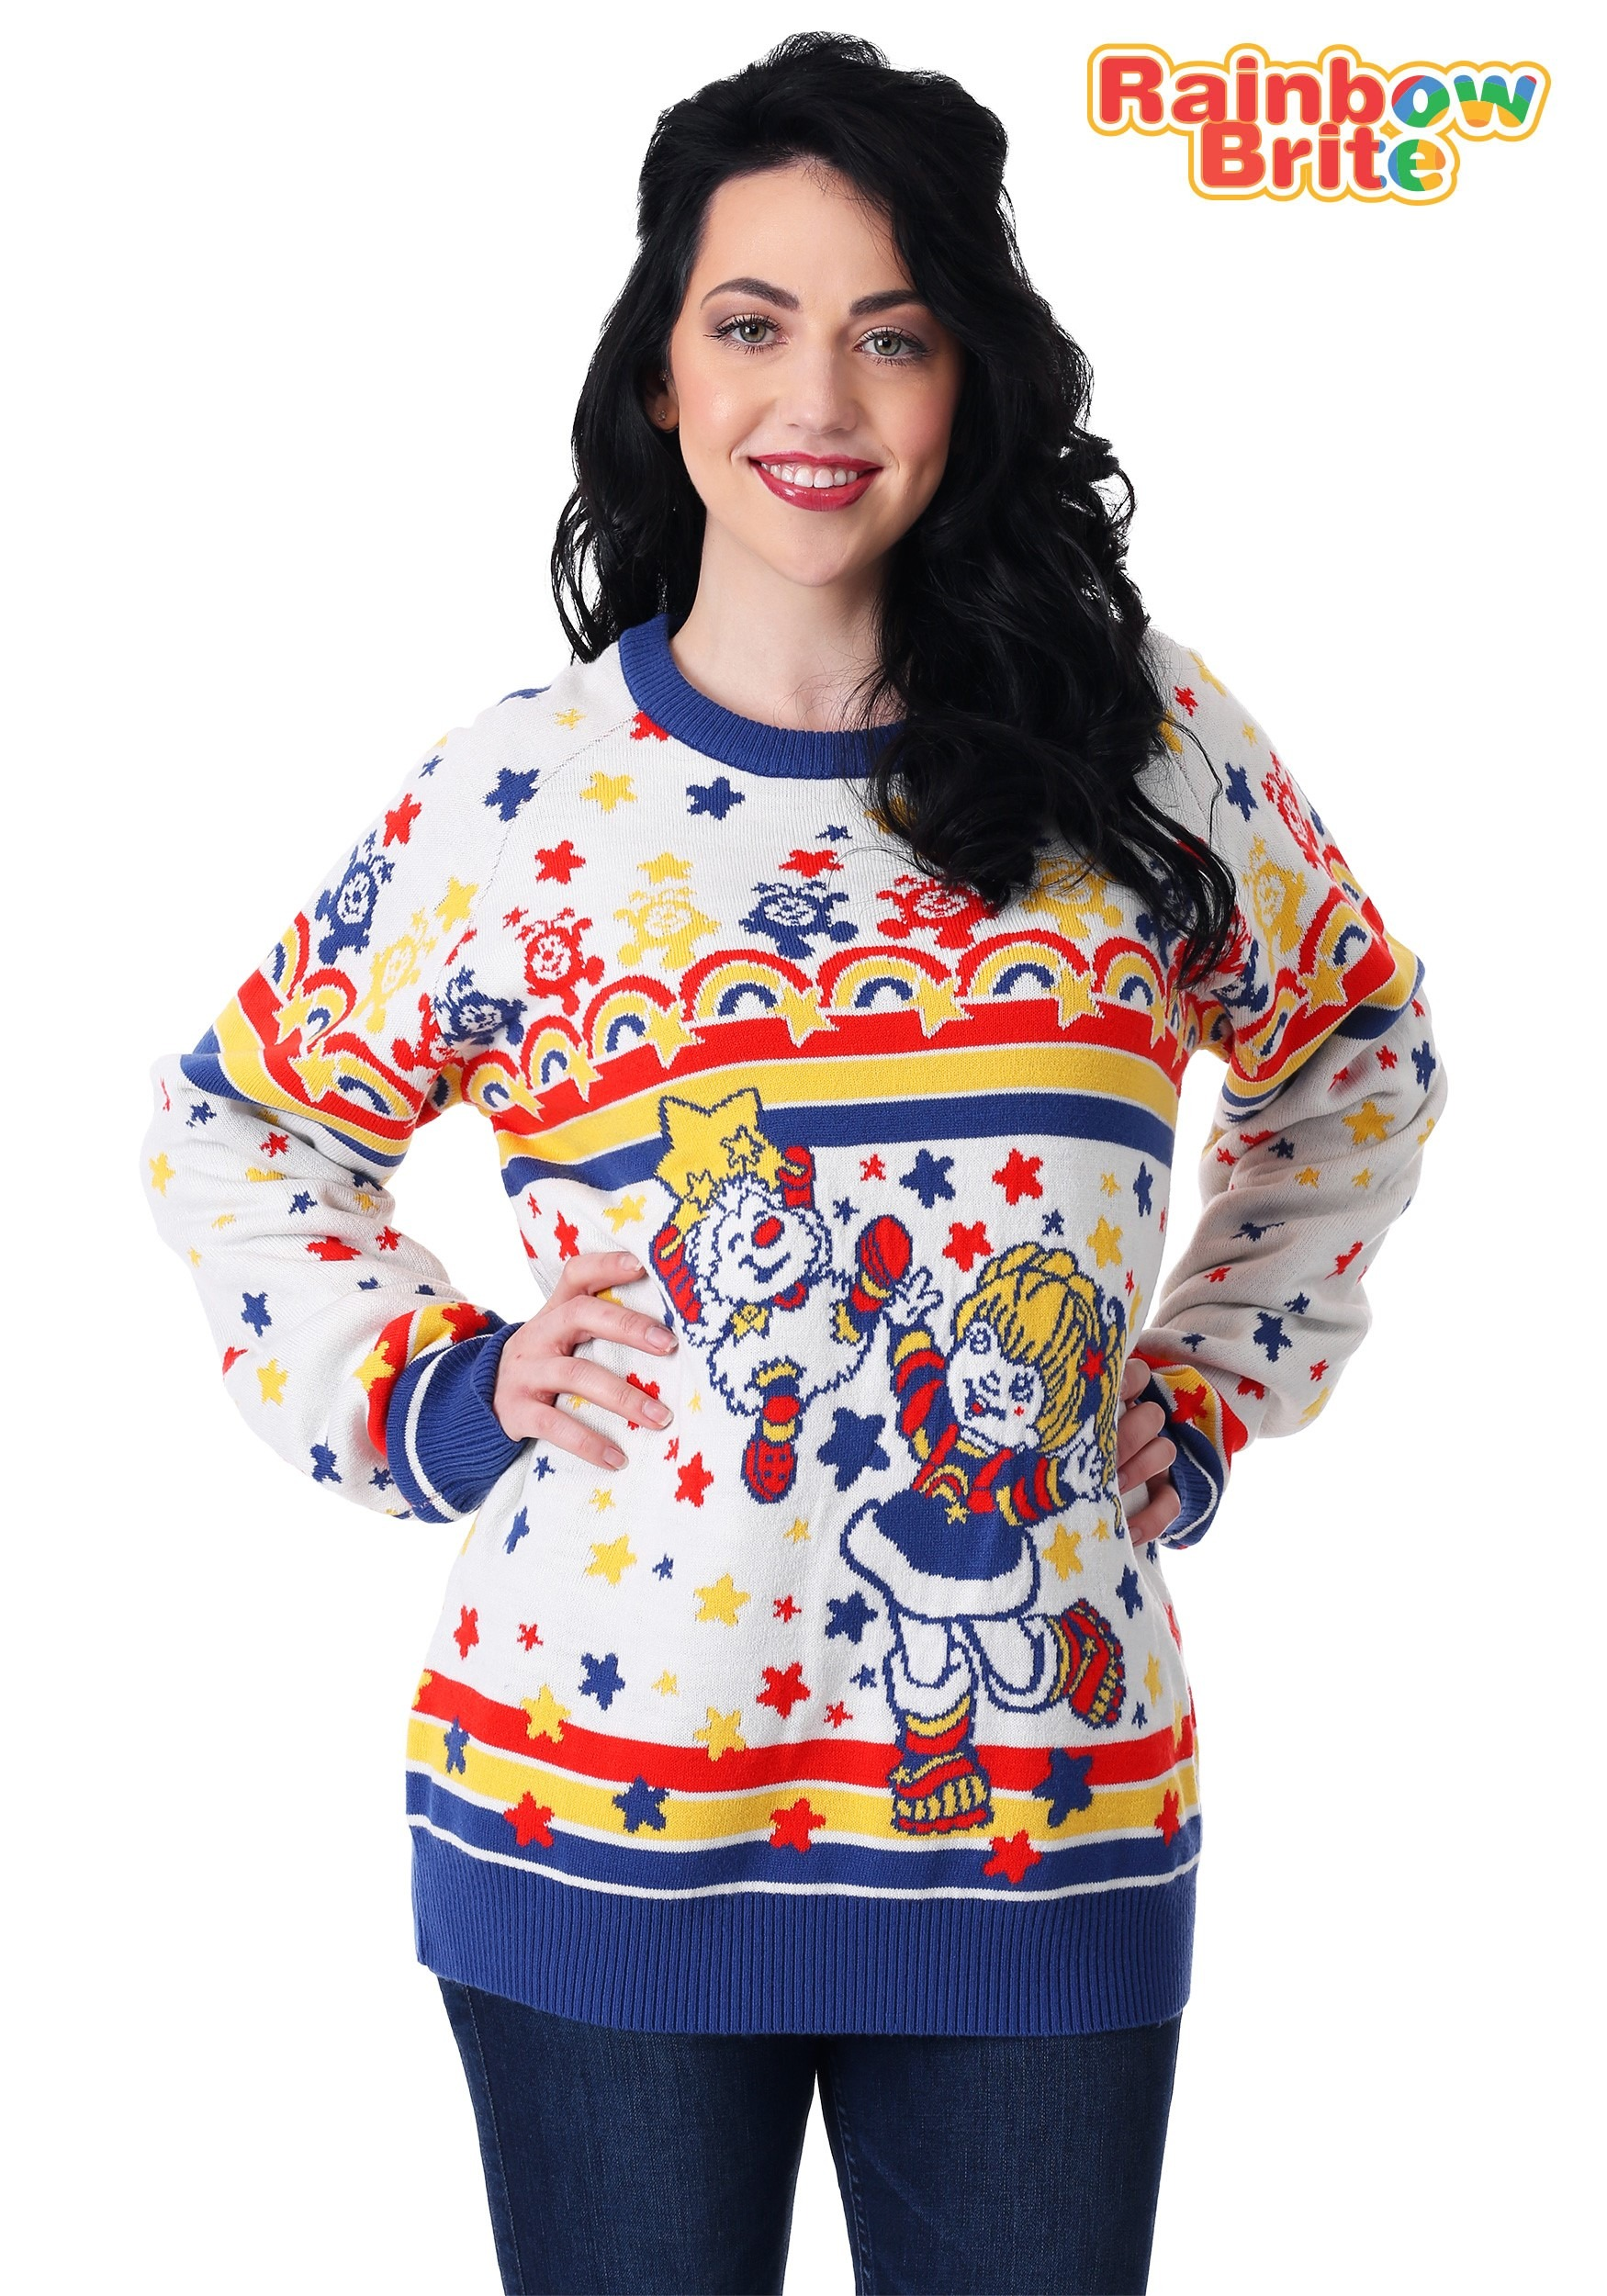 271b45fb695 ... Classic Rainbow Brite Adult Ugly Christmas Sweater Alt